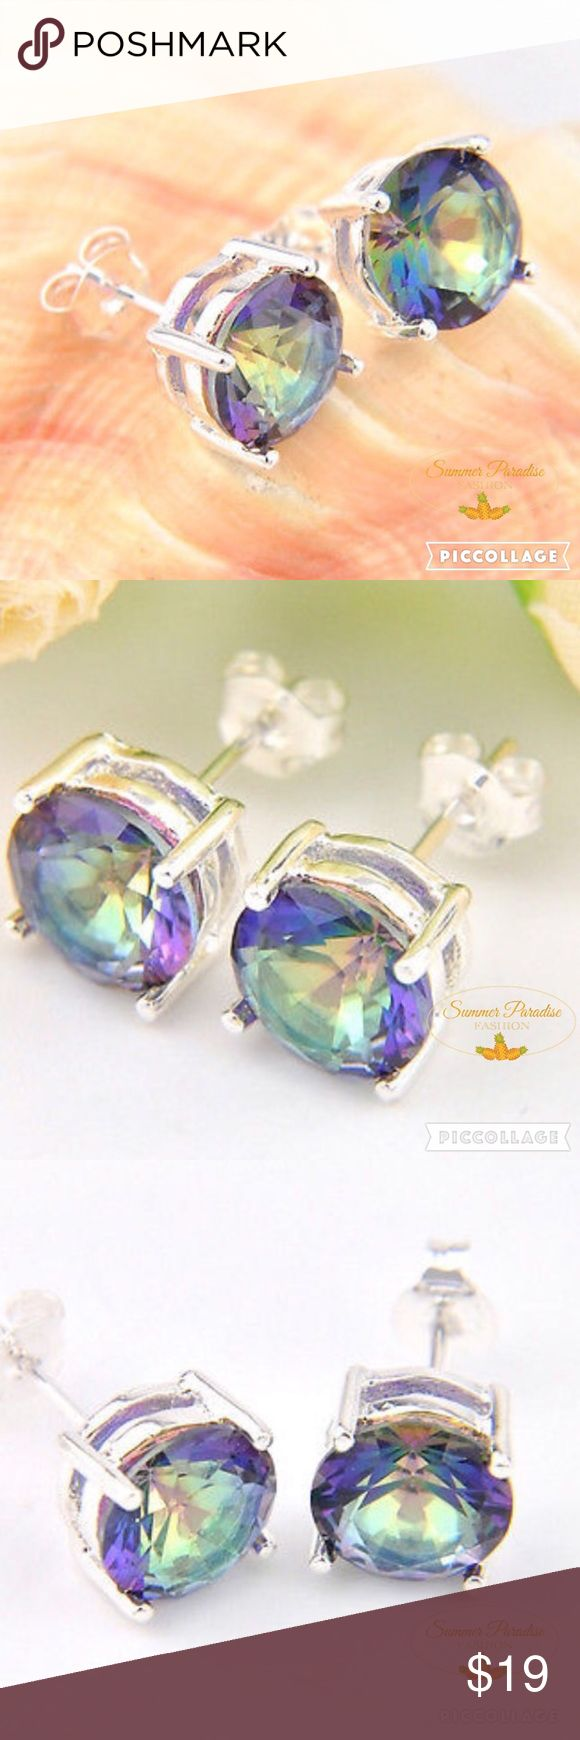 🎉BOGO 50% SALE💠NWT 18k Mystic Topaz Earrings Vibrant 9mm 18k white gold mystic topaz stud earrings!                                                                       💠BOGO 50% OFF! Buy 1 item and get 2nd item of equal or less price at 50% OFF!                    💠Ask for a BOGO 50 bundle for your selections!                                                   💠FREE GIFT with purchases over $10!         TAGS: Stud earrings, white gold earrings, Topaz earrings, mystic topaz, rainbow…